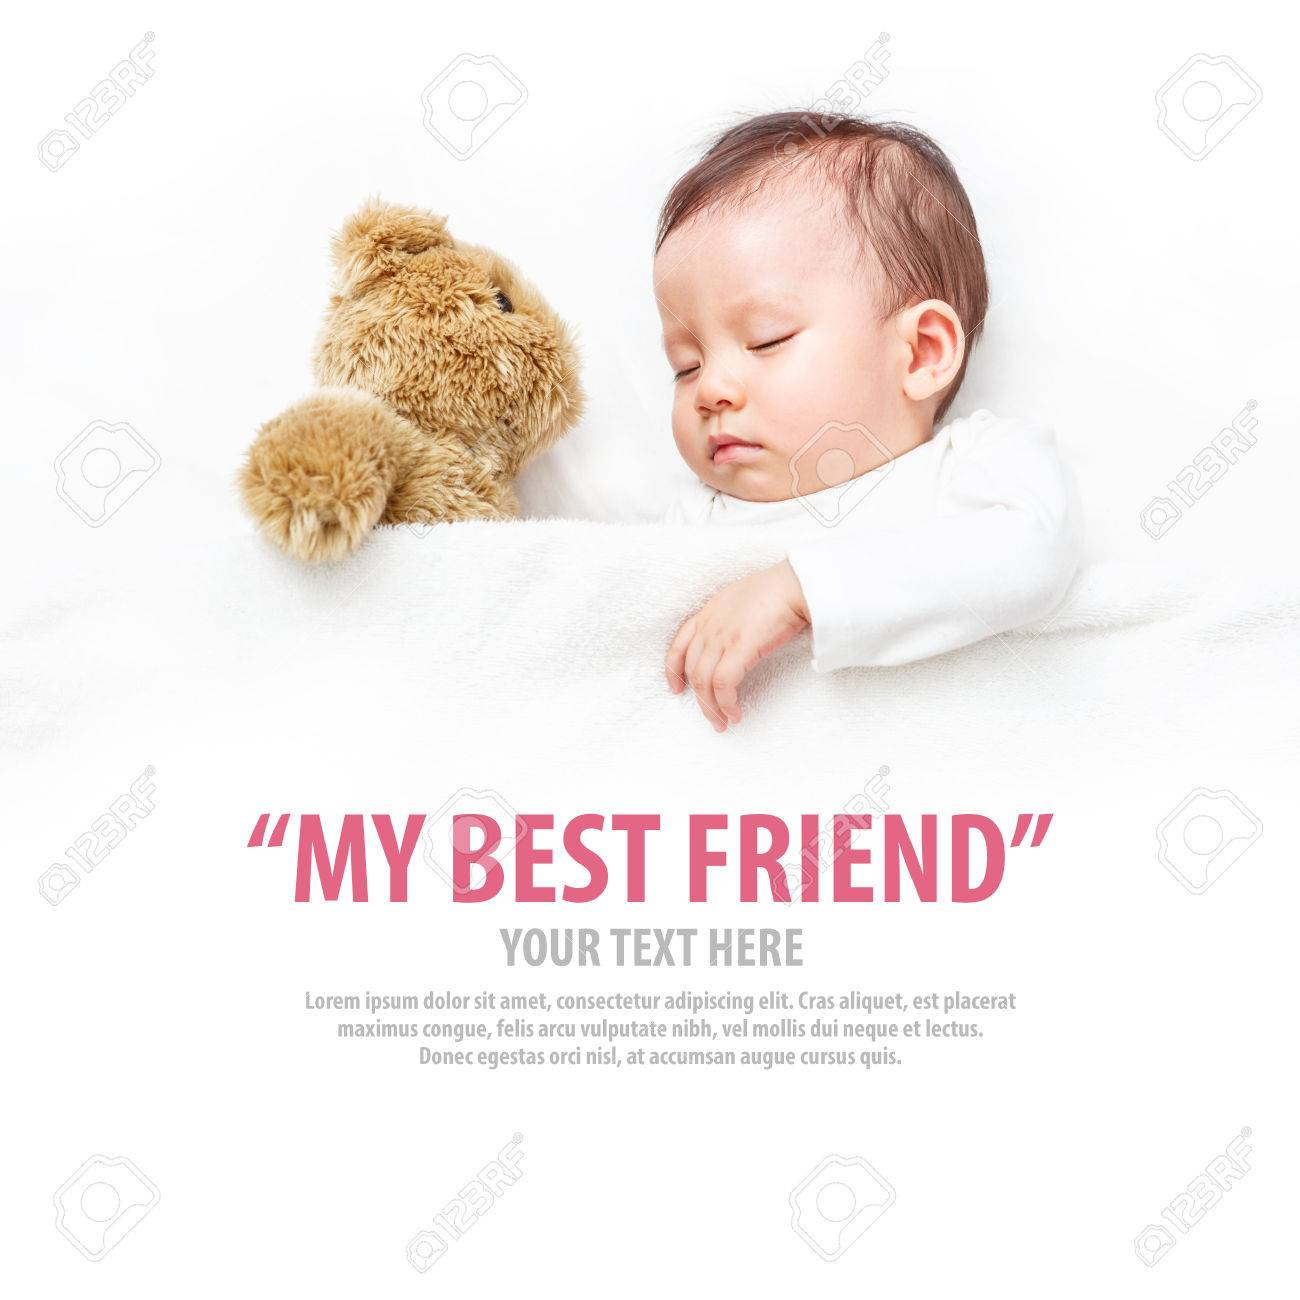 Baby sleeping with her teddy bear, new family and love concept. - 66971047